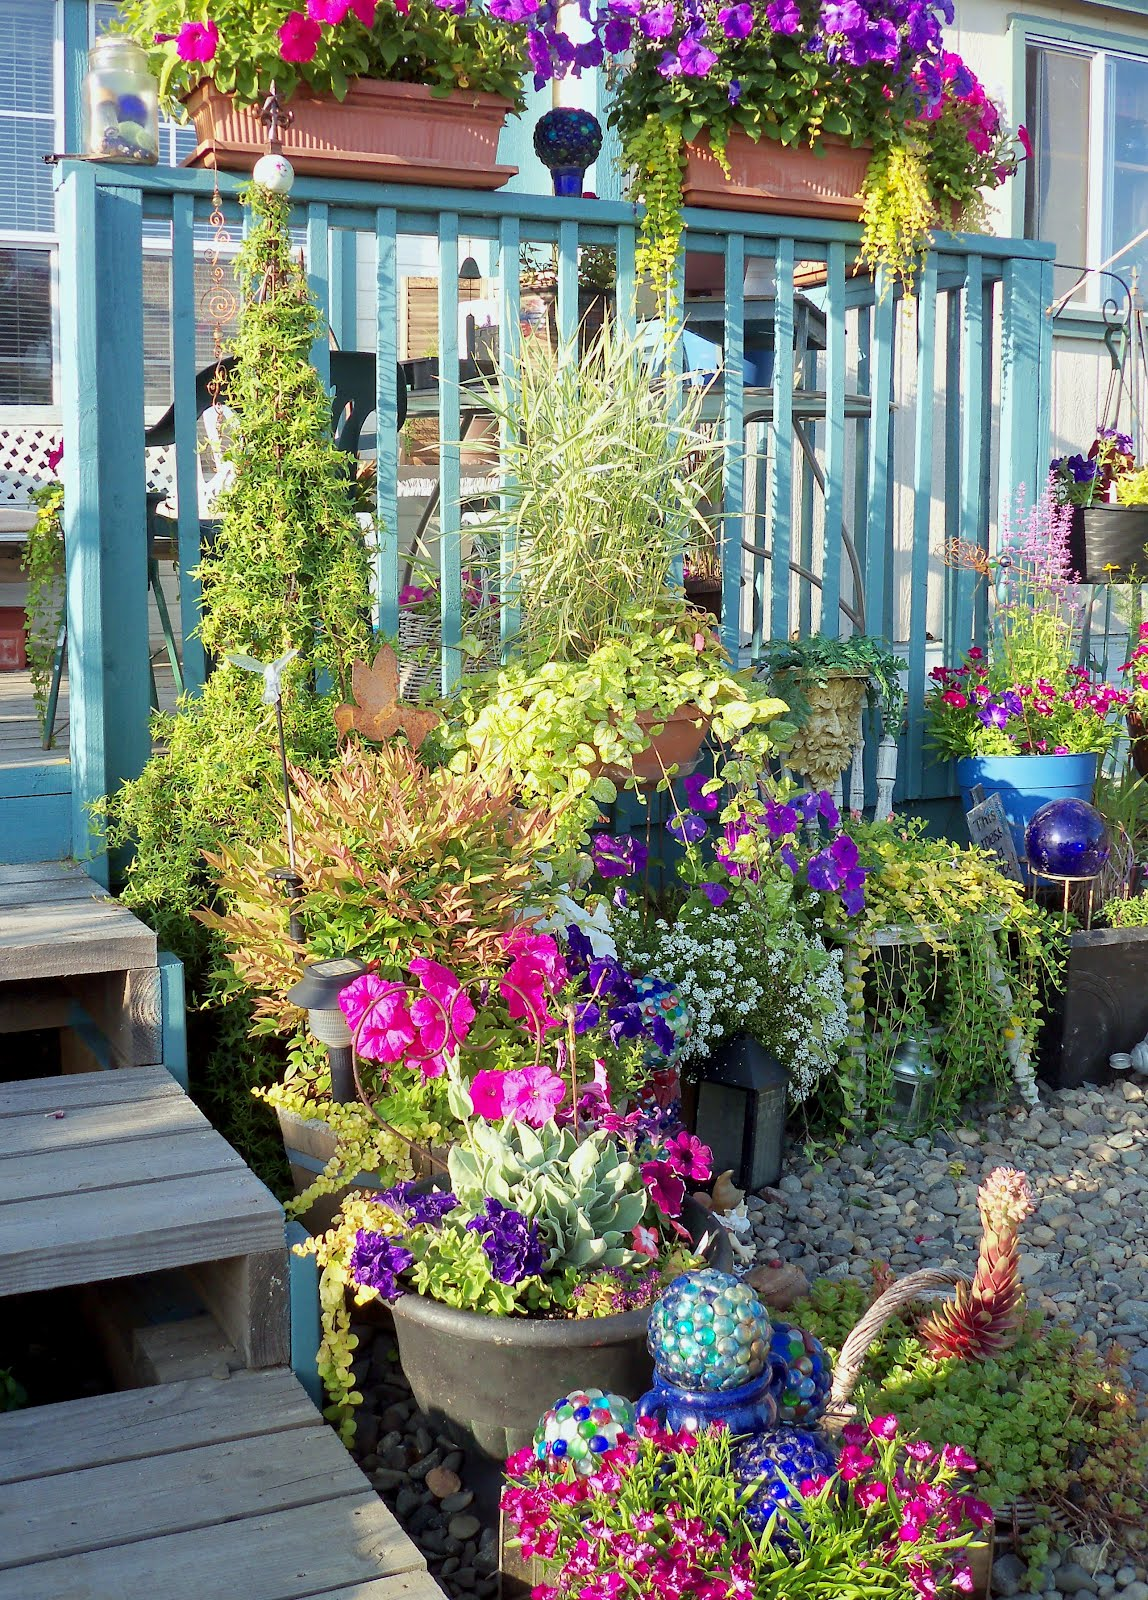 Make The Best of Things Front Deck Flower Planters